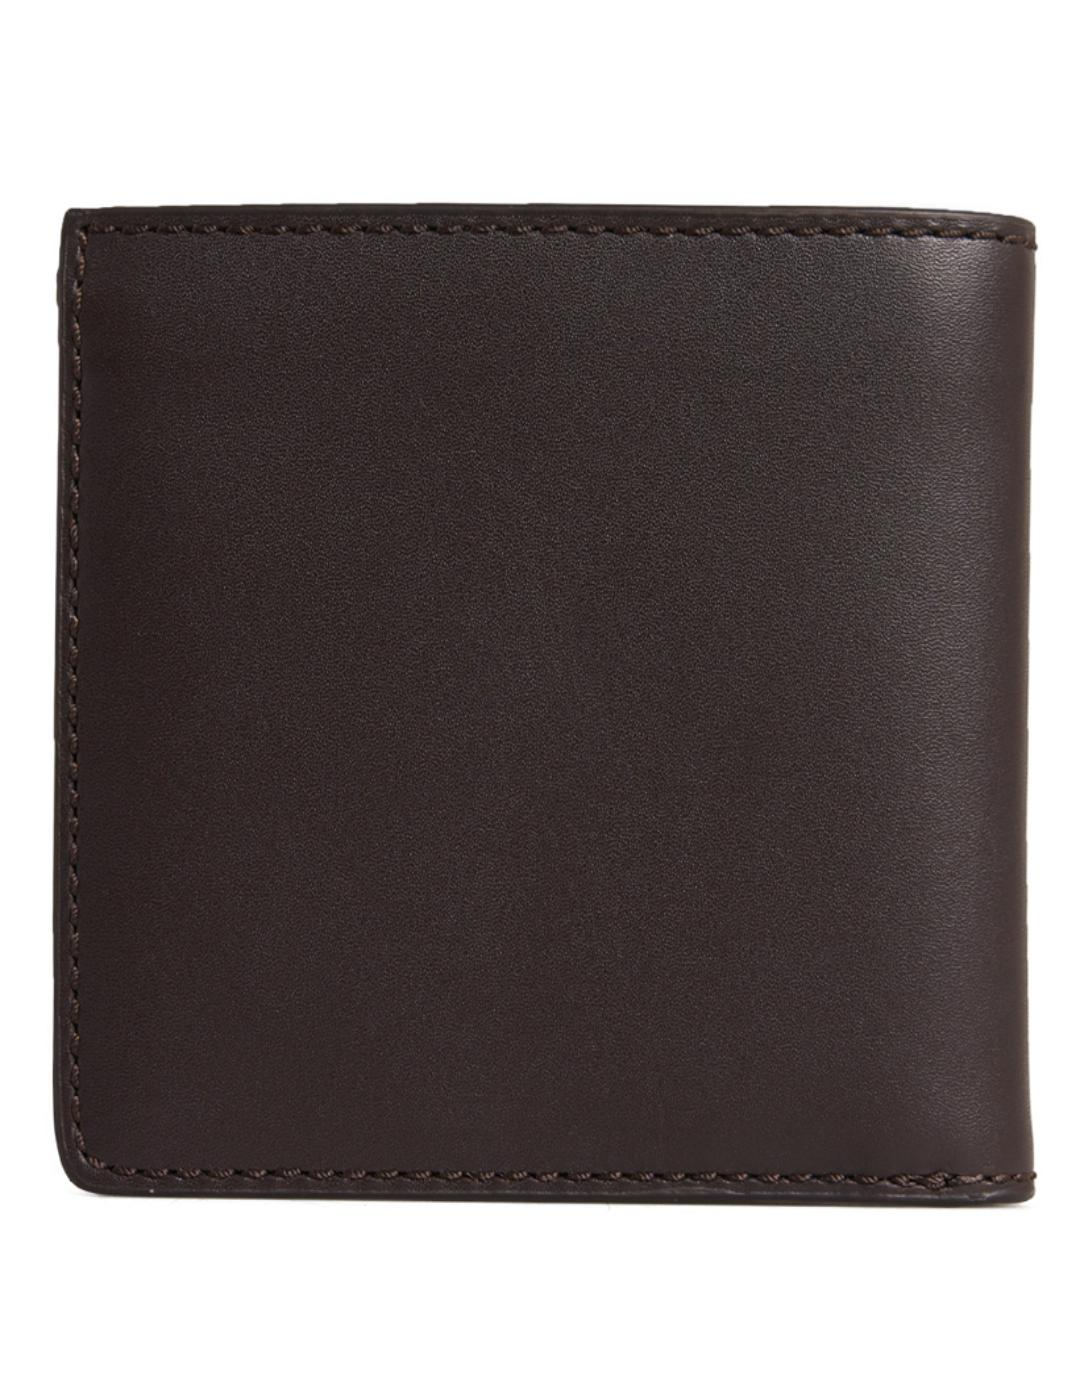 VERMONT BIFOLD LEATHER WALLET-X